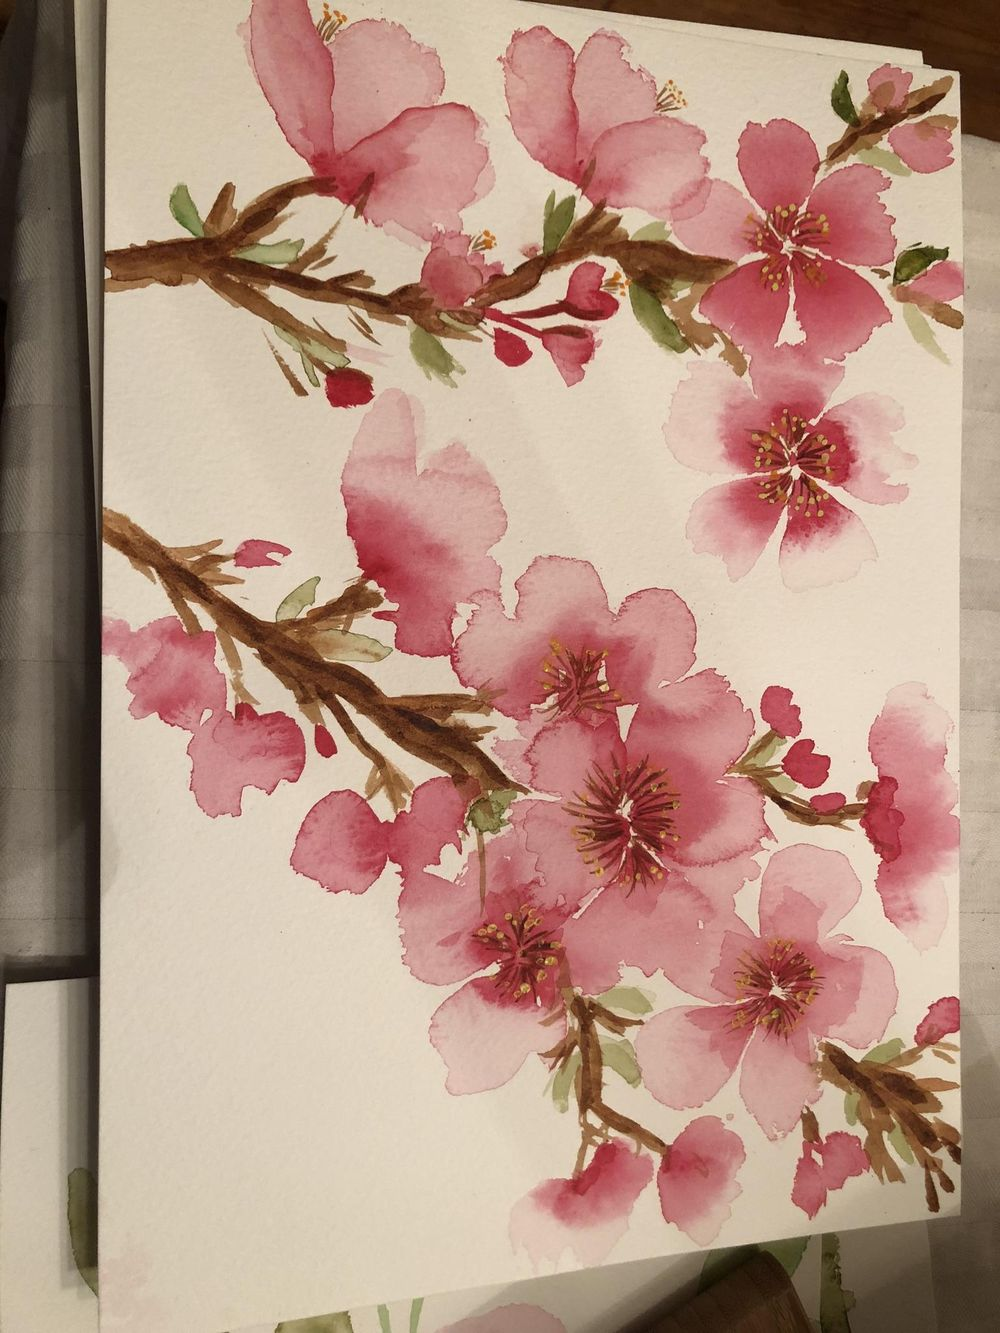 Cherry Blossom - image 1 - student project